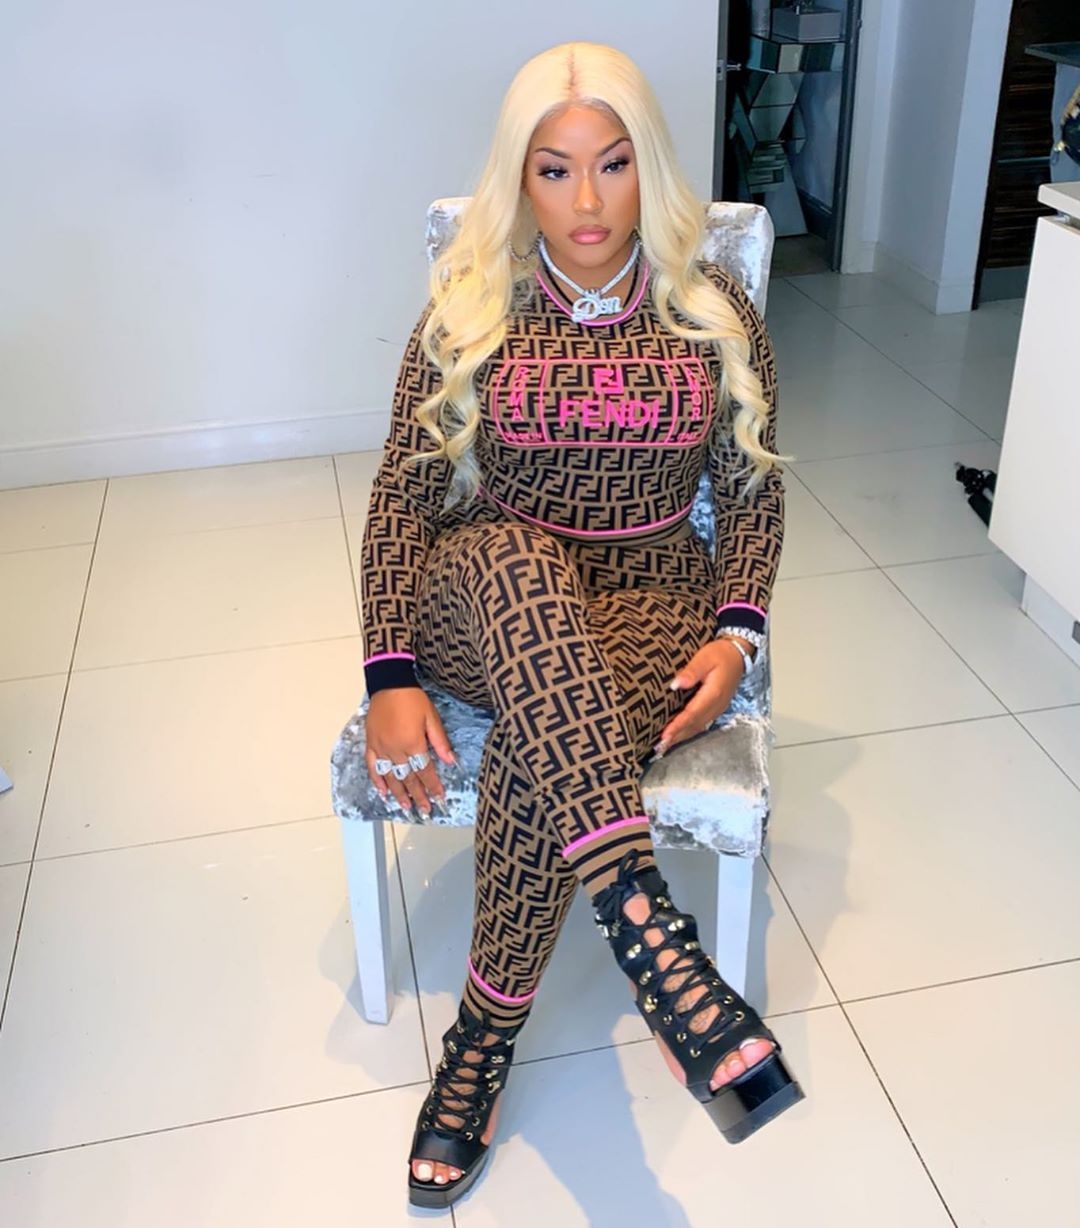 Stefflon Don Denies Breakup With Burna Boy, Claims That's An Old Video